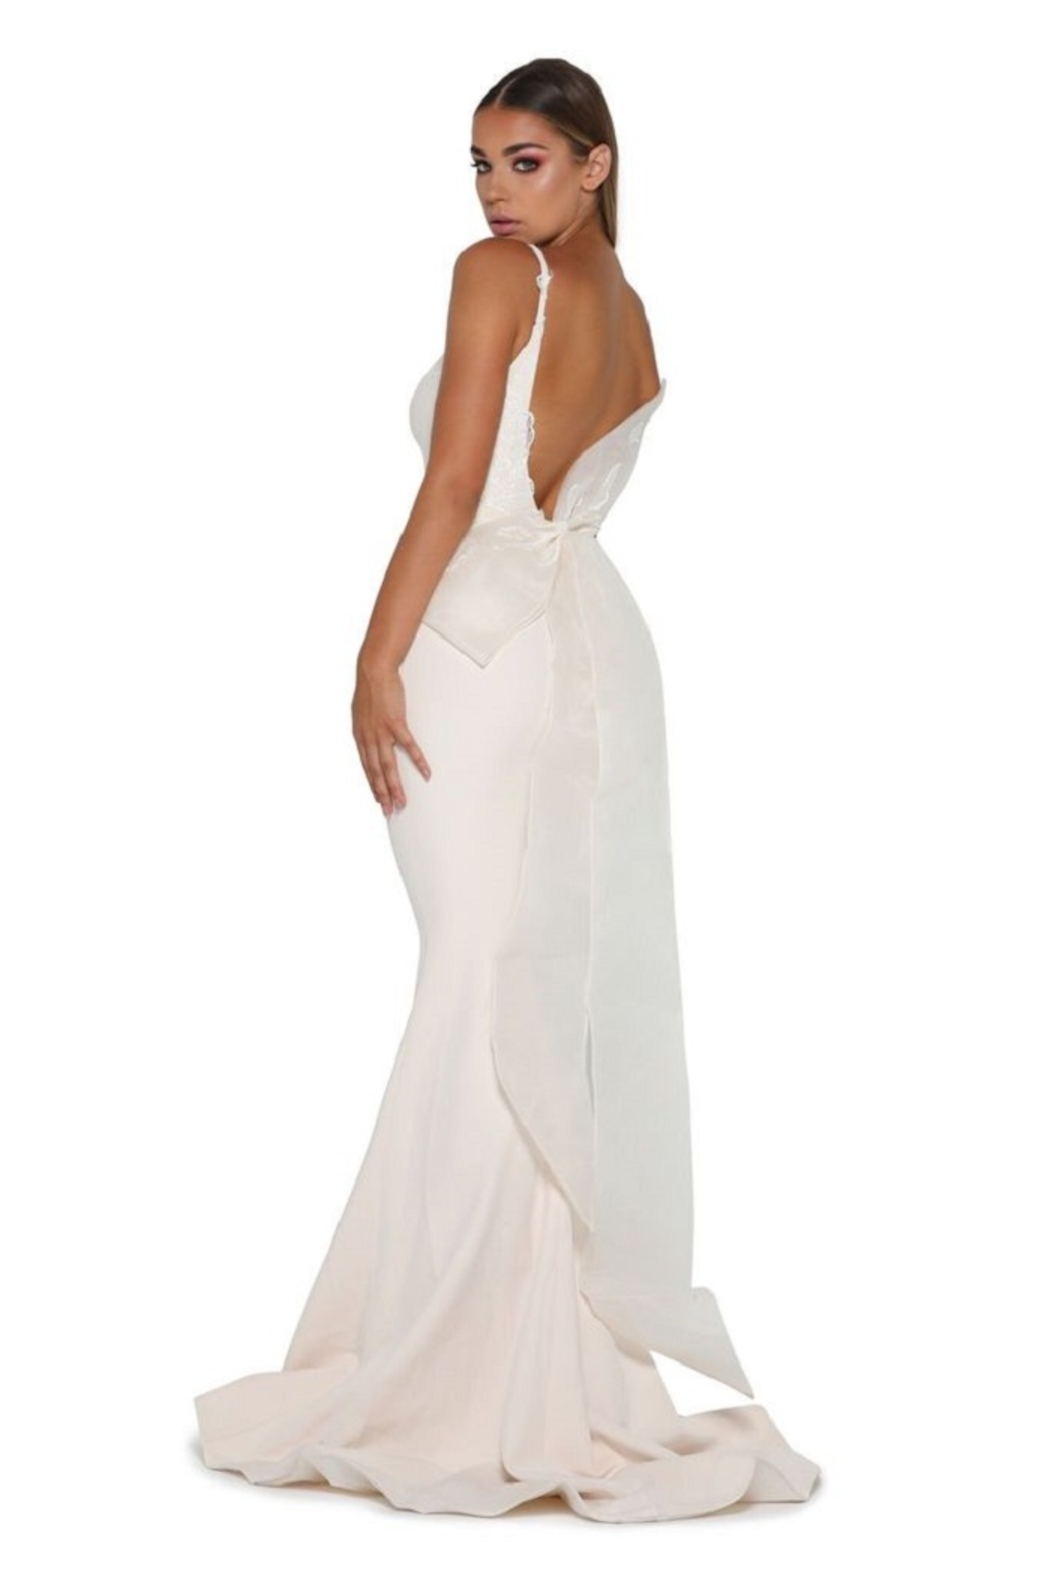 PORTIA AND SCARLETT Cream Fit & Flare Bridal Gown With Detachable Bow - Front Full Image